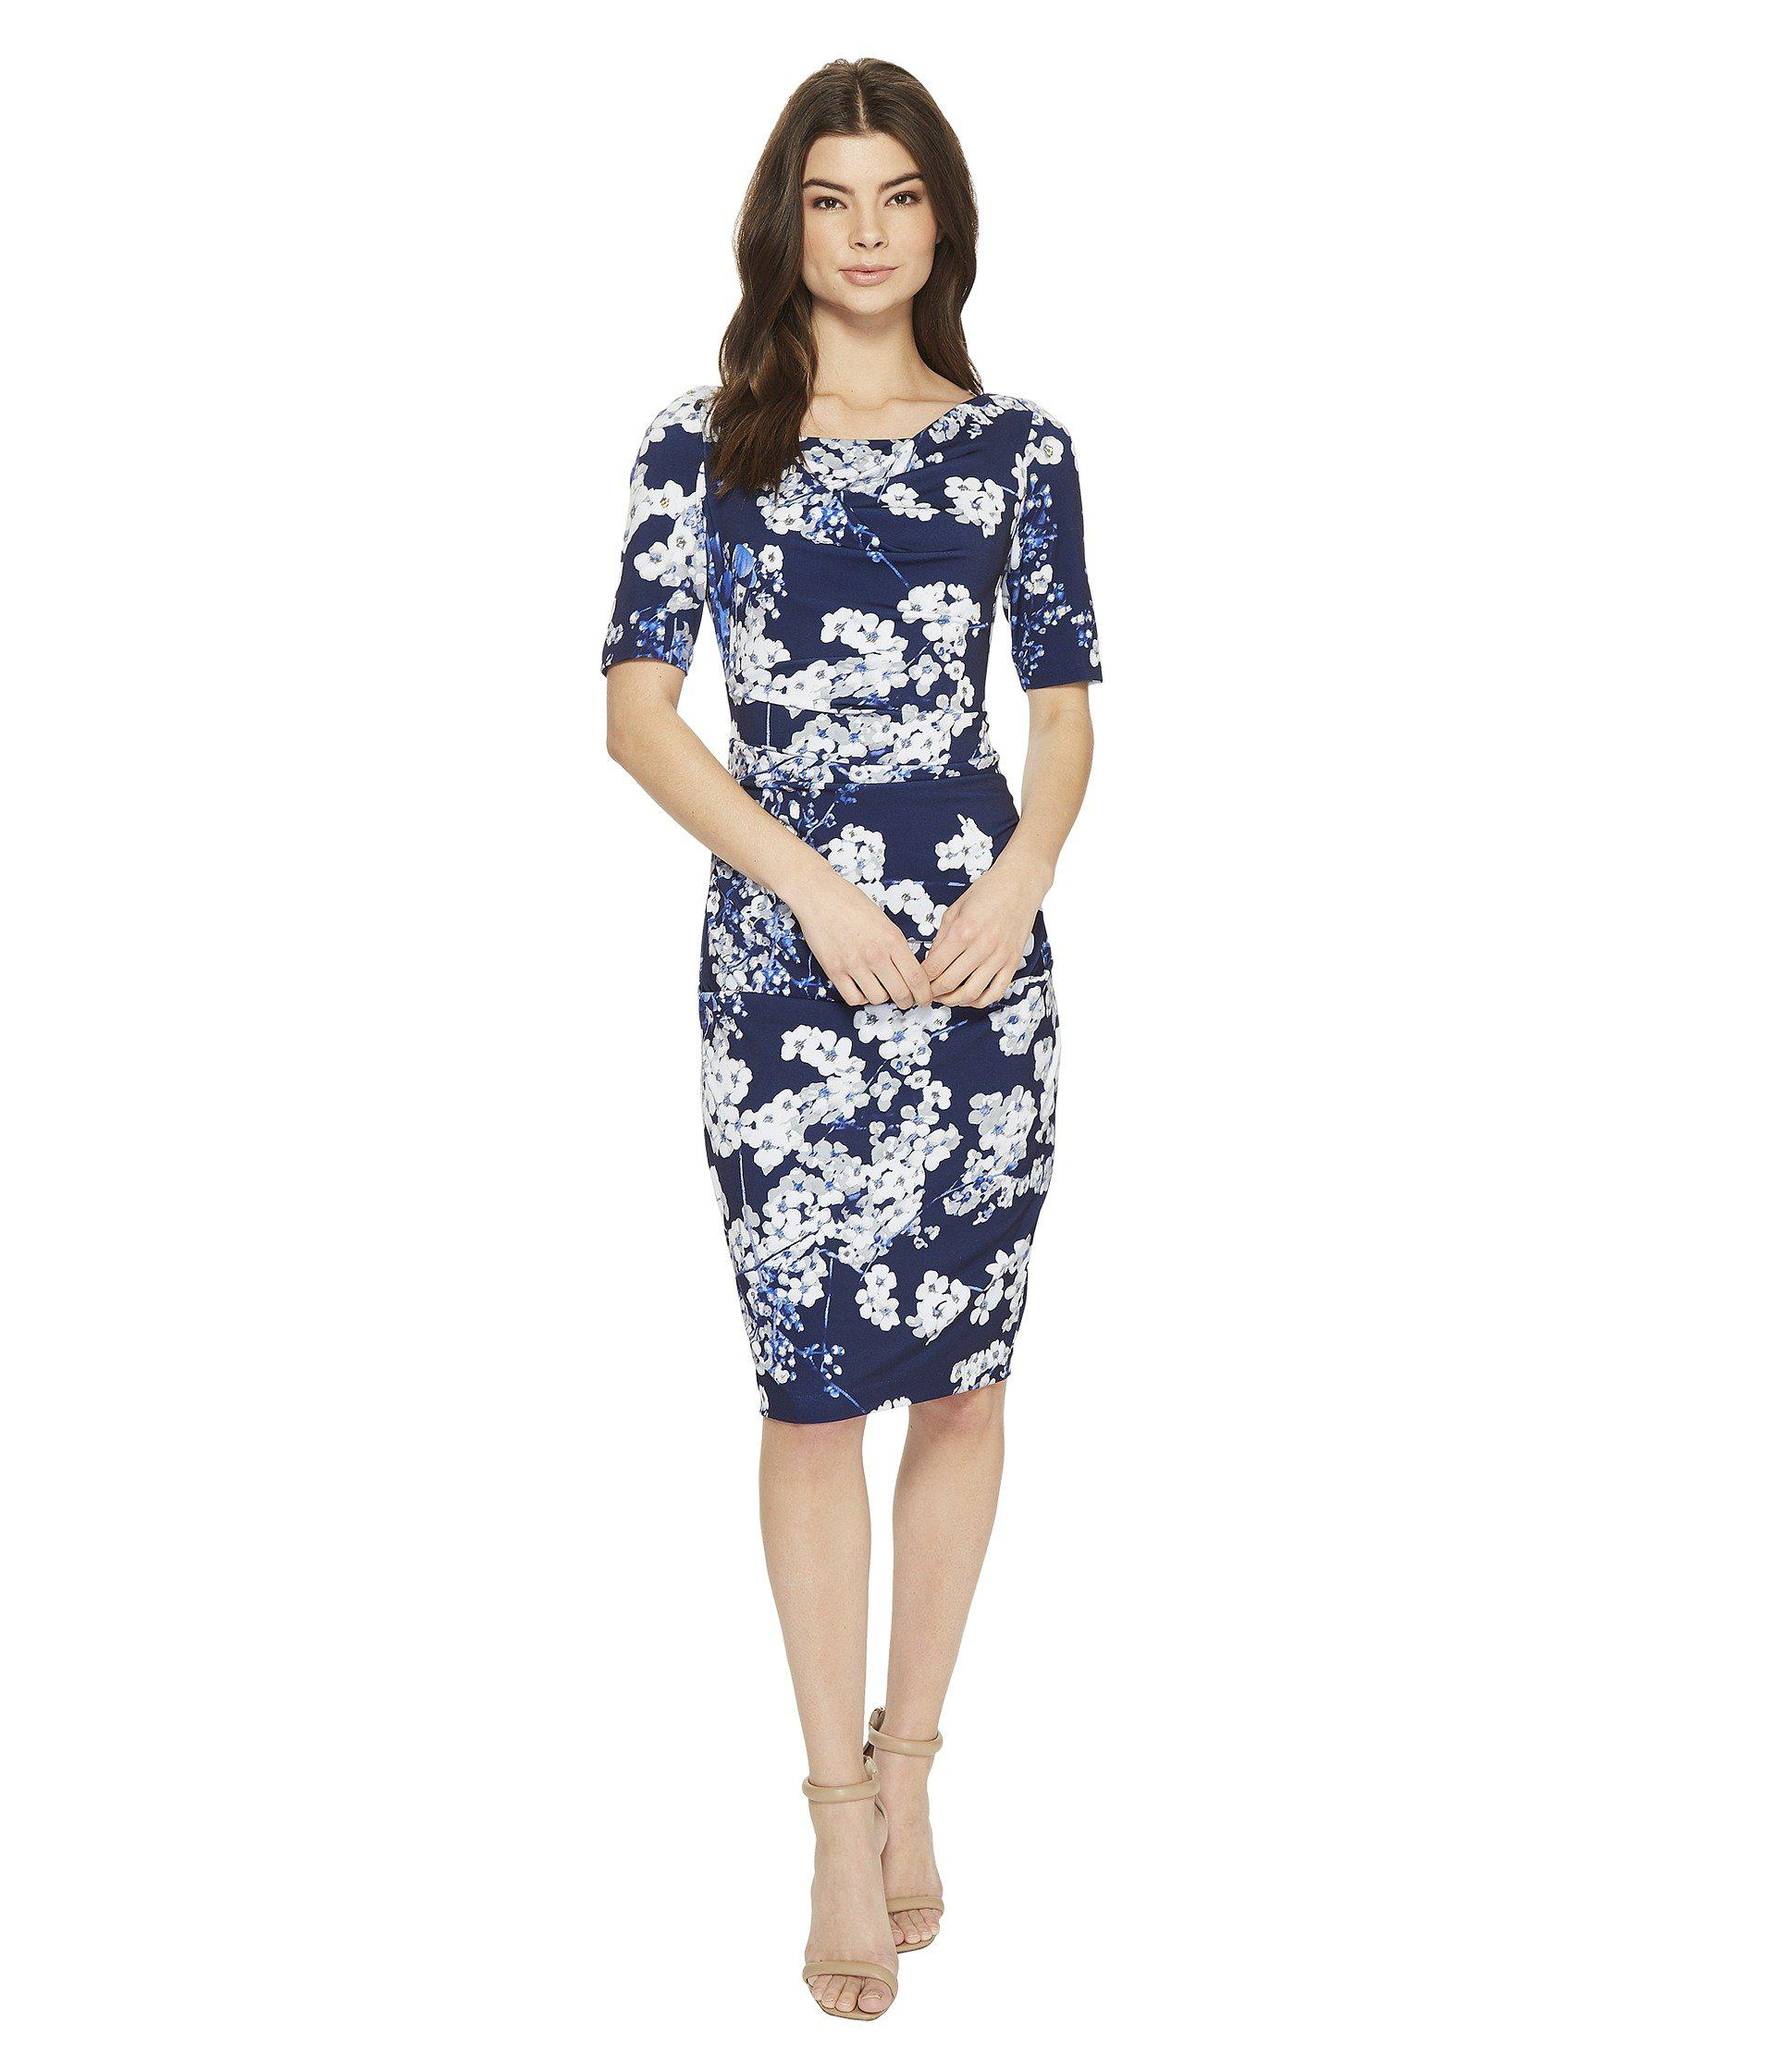 59cb475bddca Lyst - Adrianna Papell Watercolor Blossoms Printed Sheath Dress in ...